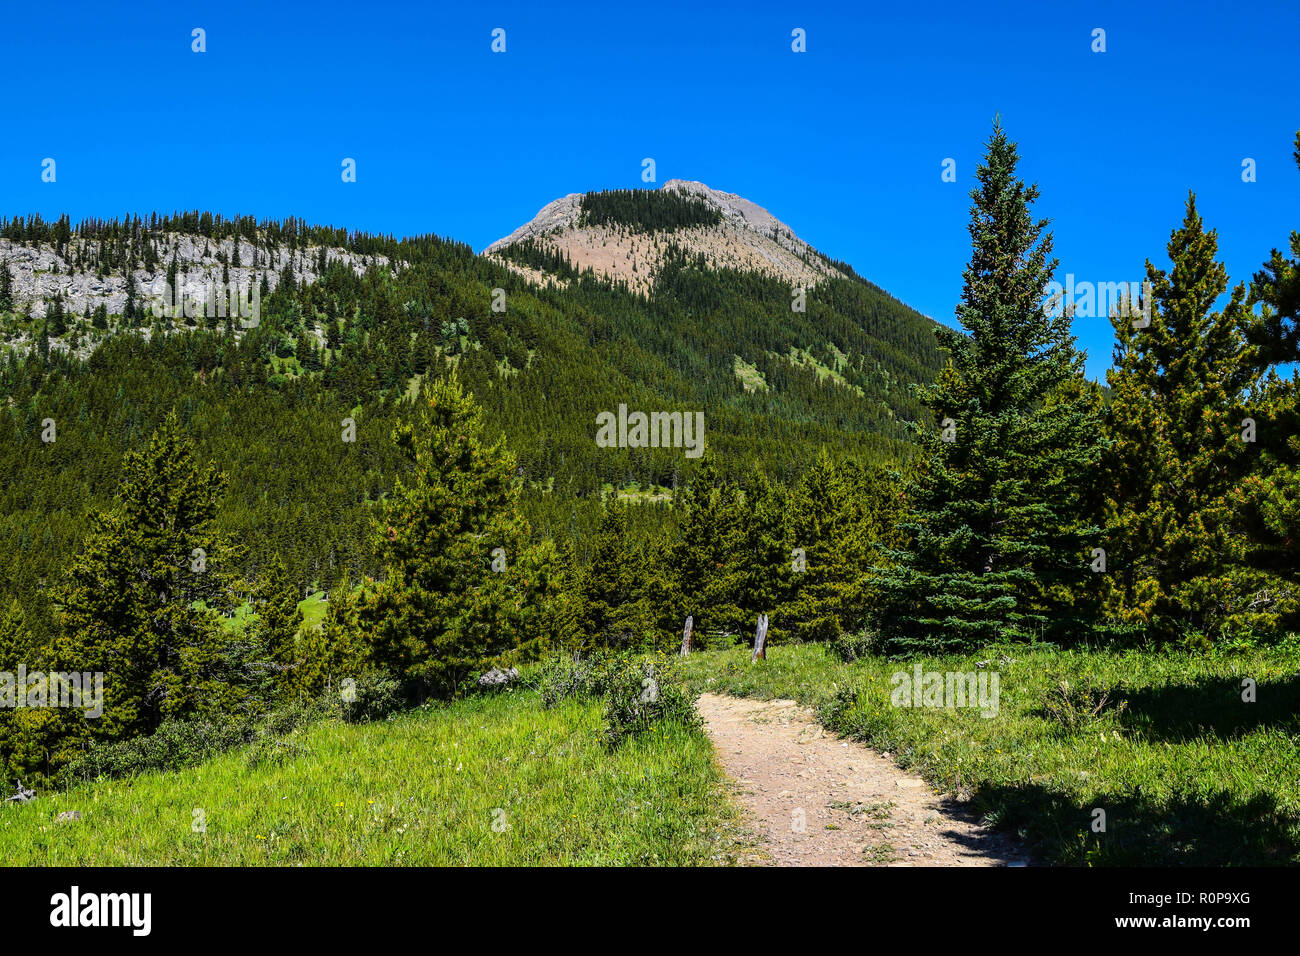 scenery from the trails in the Rocky mountains of Alberta Canada Stock Photo